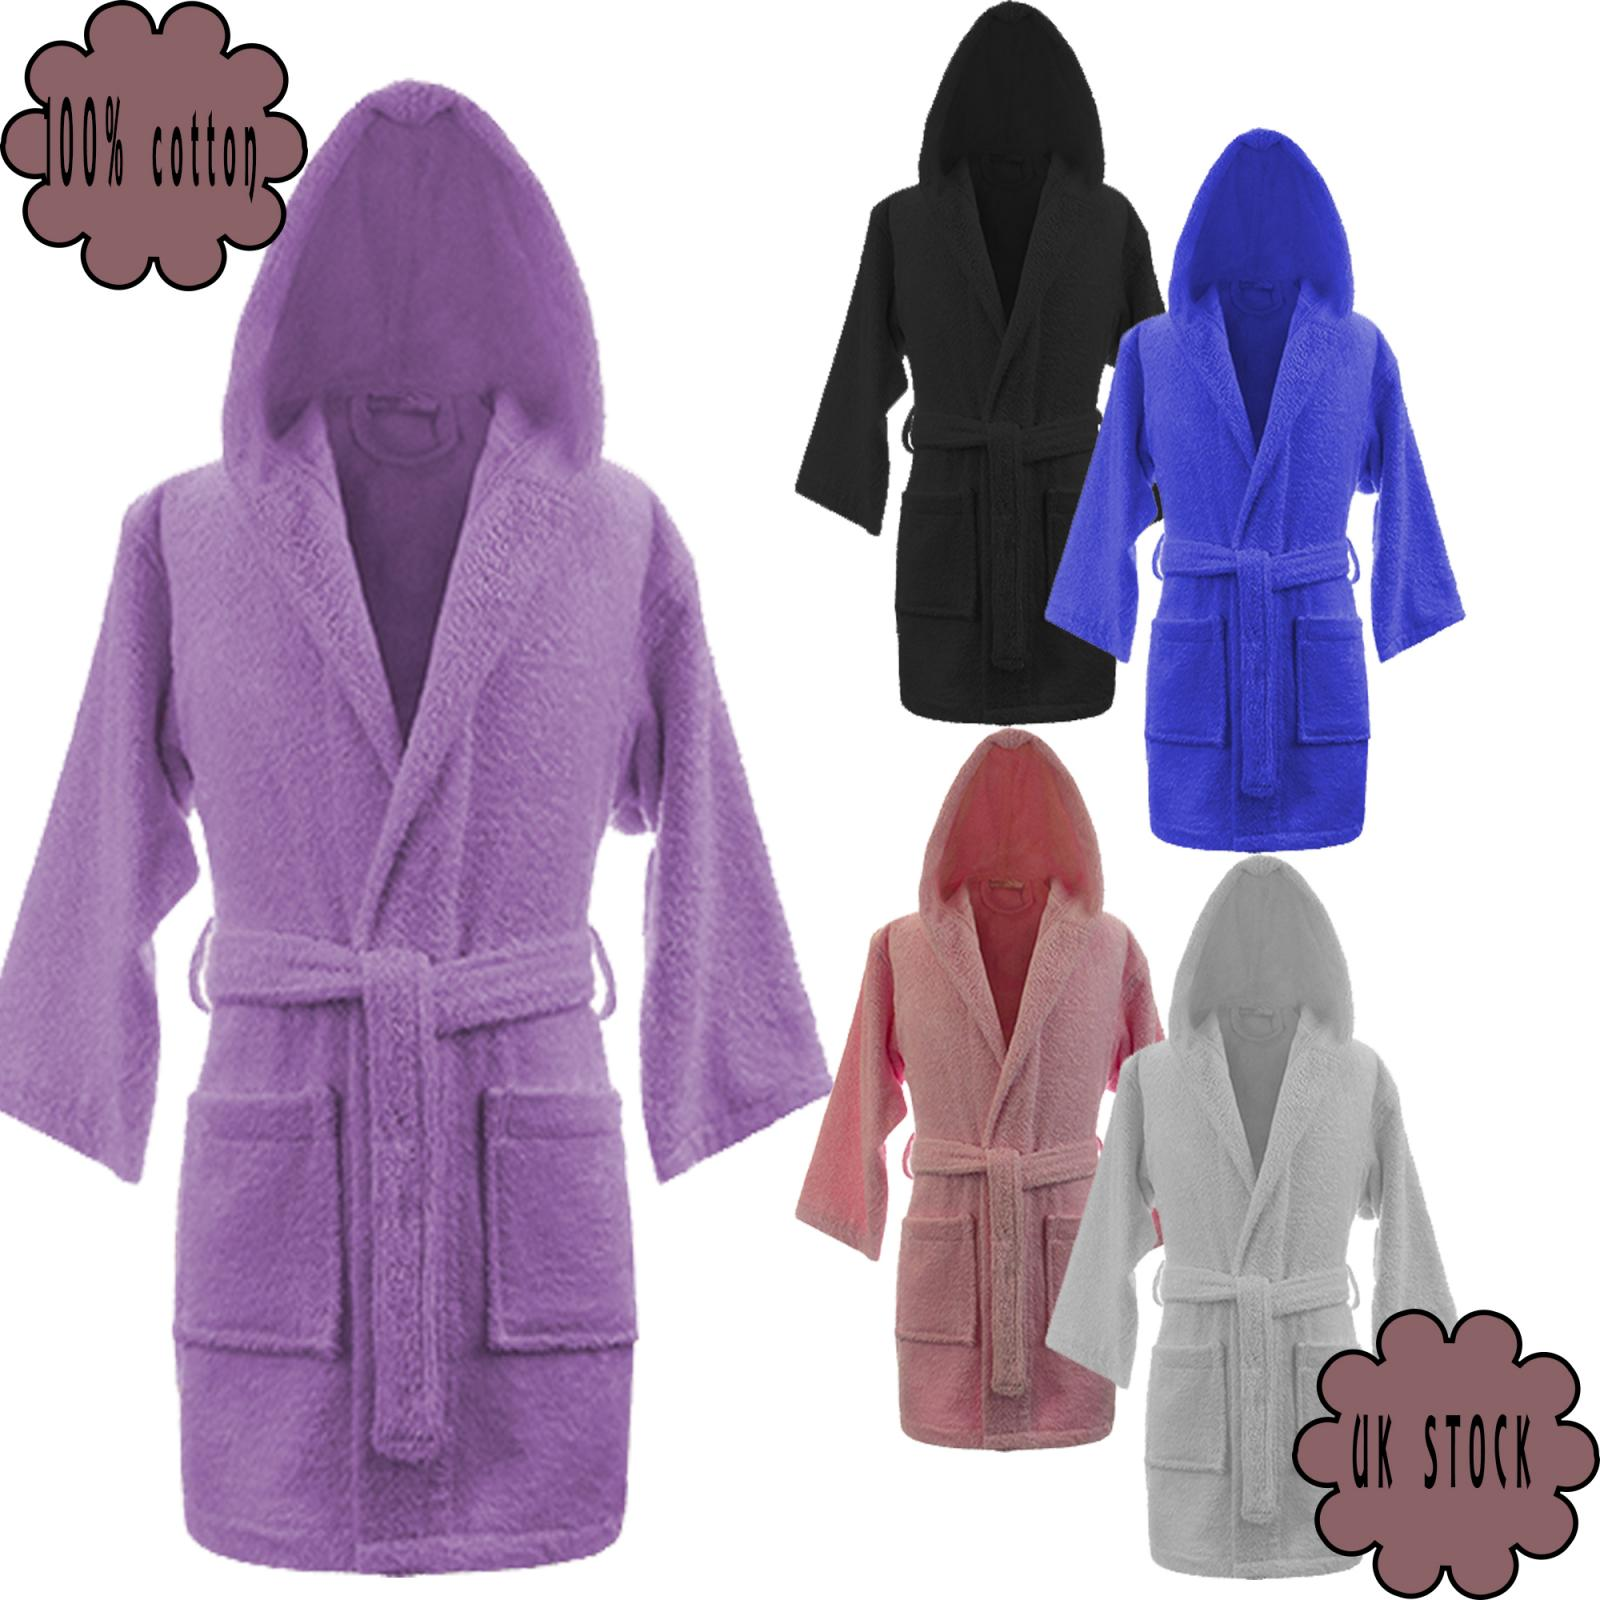 Details about New Kids Dressing Gown Girls Boys Robe Bathrobe Hooded Bath  Soft Warm 100%Cotton 3eaa7bc76